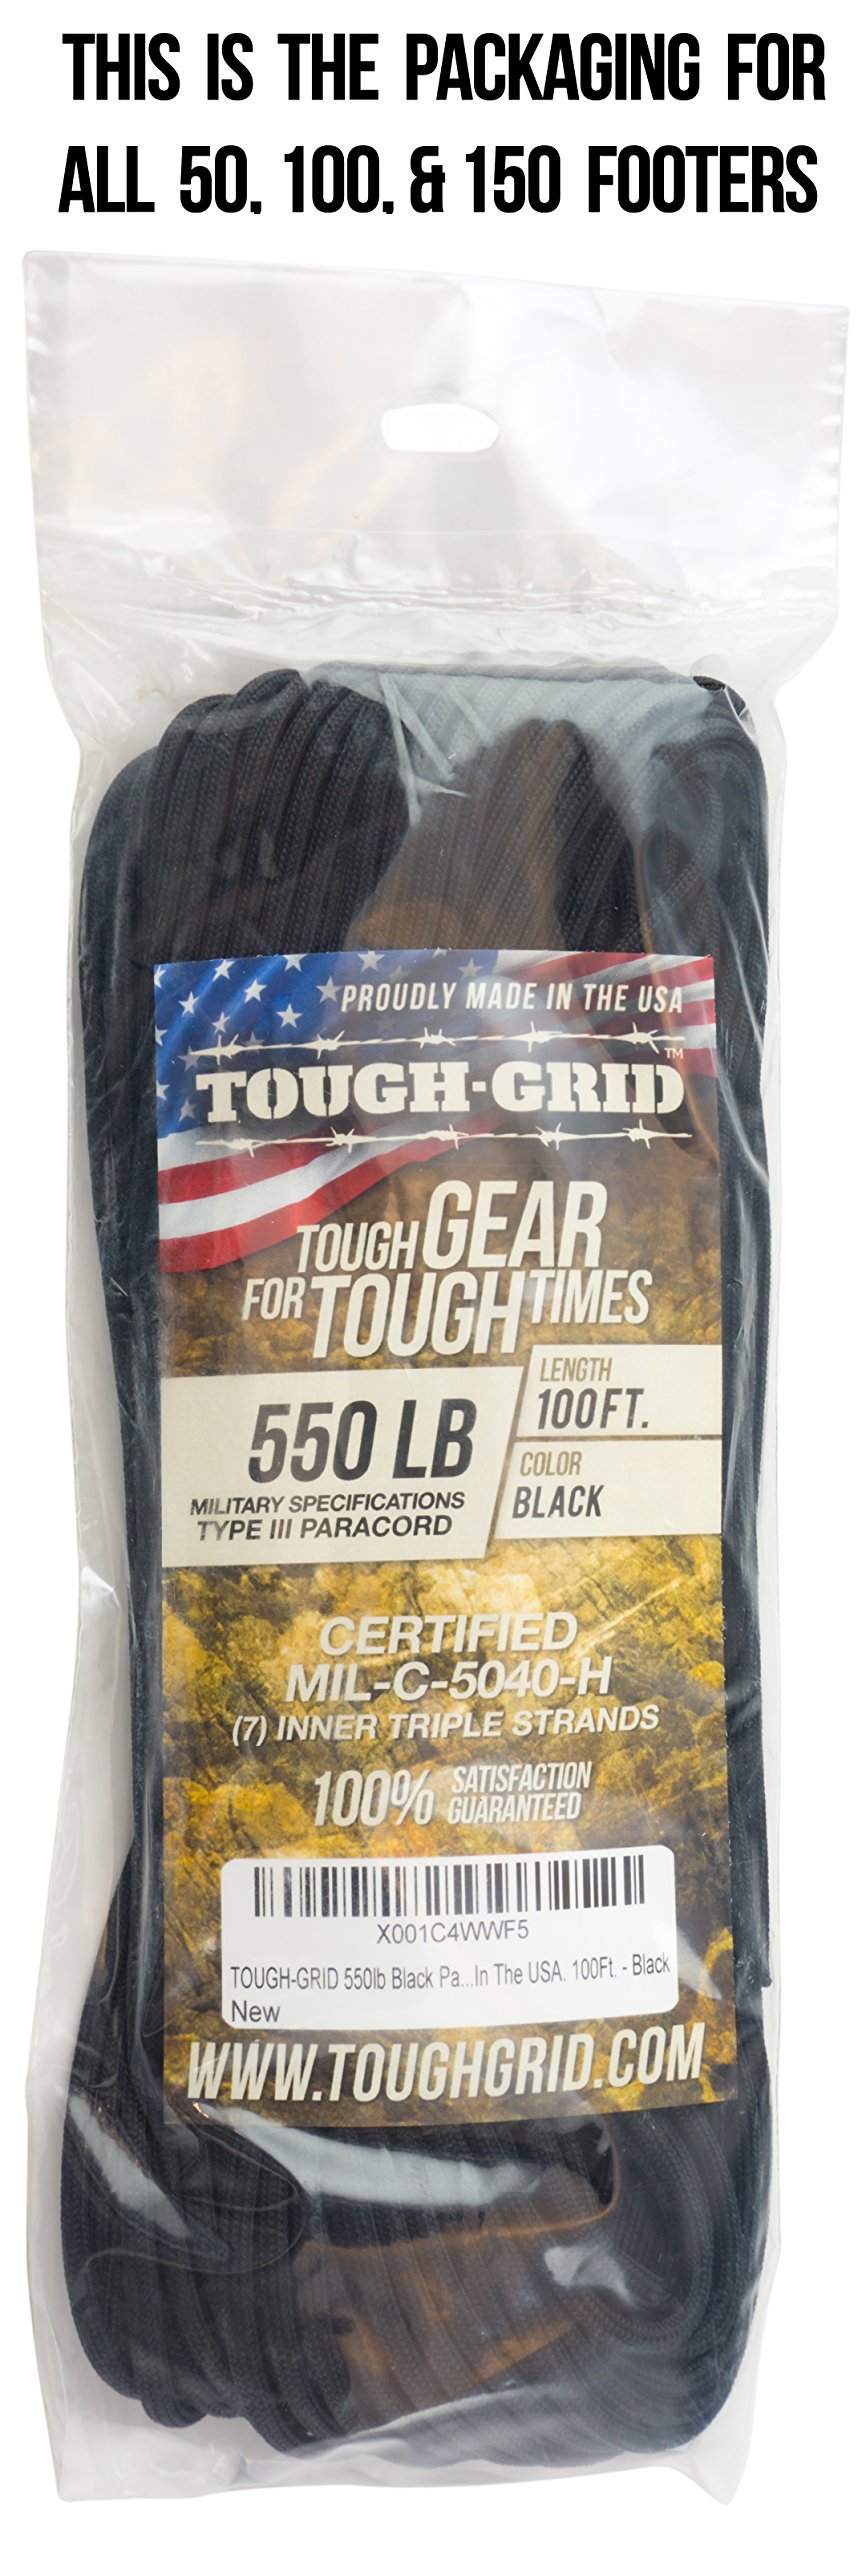 TOUGH-GRID 550lb Black Paracord/Parachute Cord - 100% Nylon Genuine Mil-Spec Type III Paracord Used by The US Military - Great for Bracelets and Lanyards - Made in The USA. 50Ft. - Black by TOUGH-GRID (Image #4)